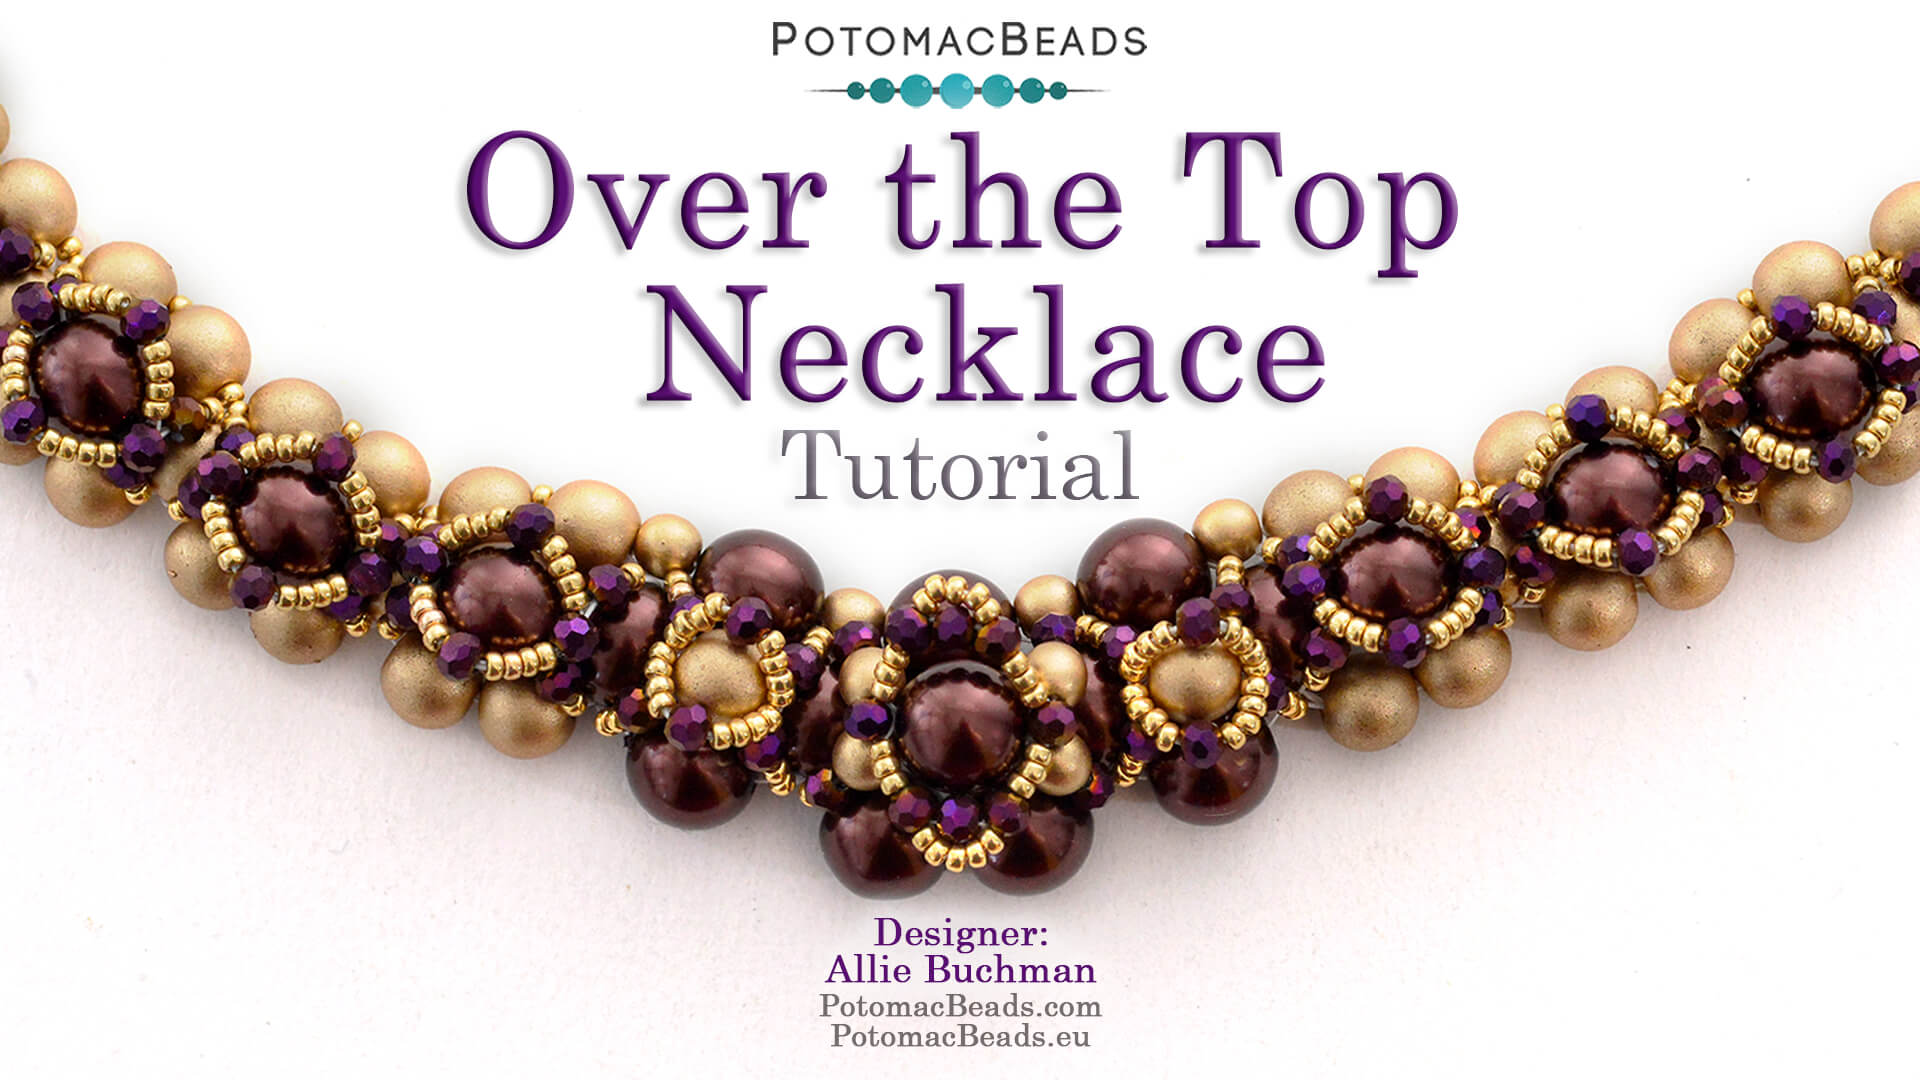 How to Bead / Videos Sorted by Beads / Potomac Crystal Videos / Over the Top Necklace Tutorial